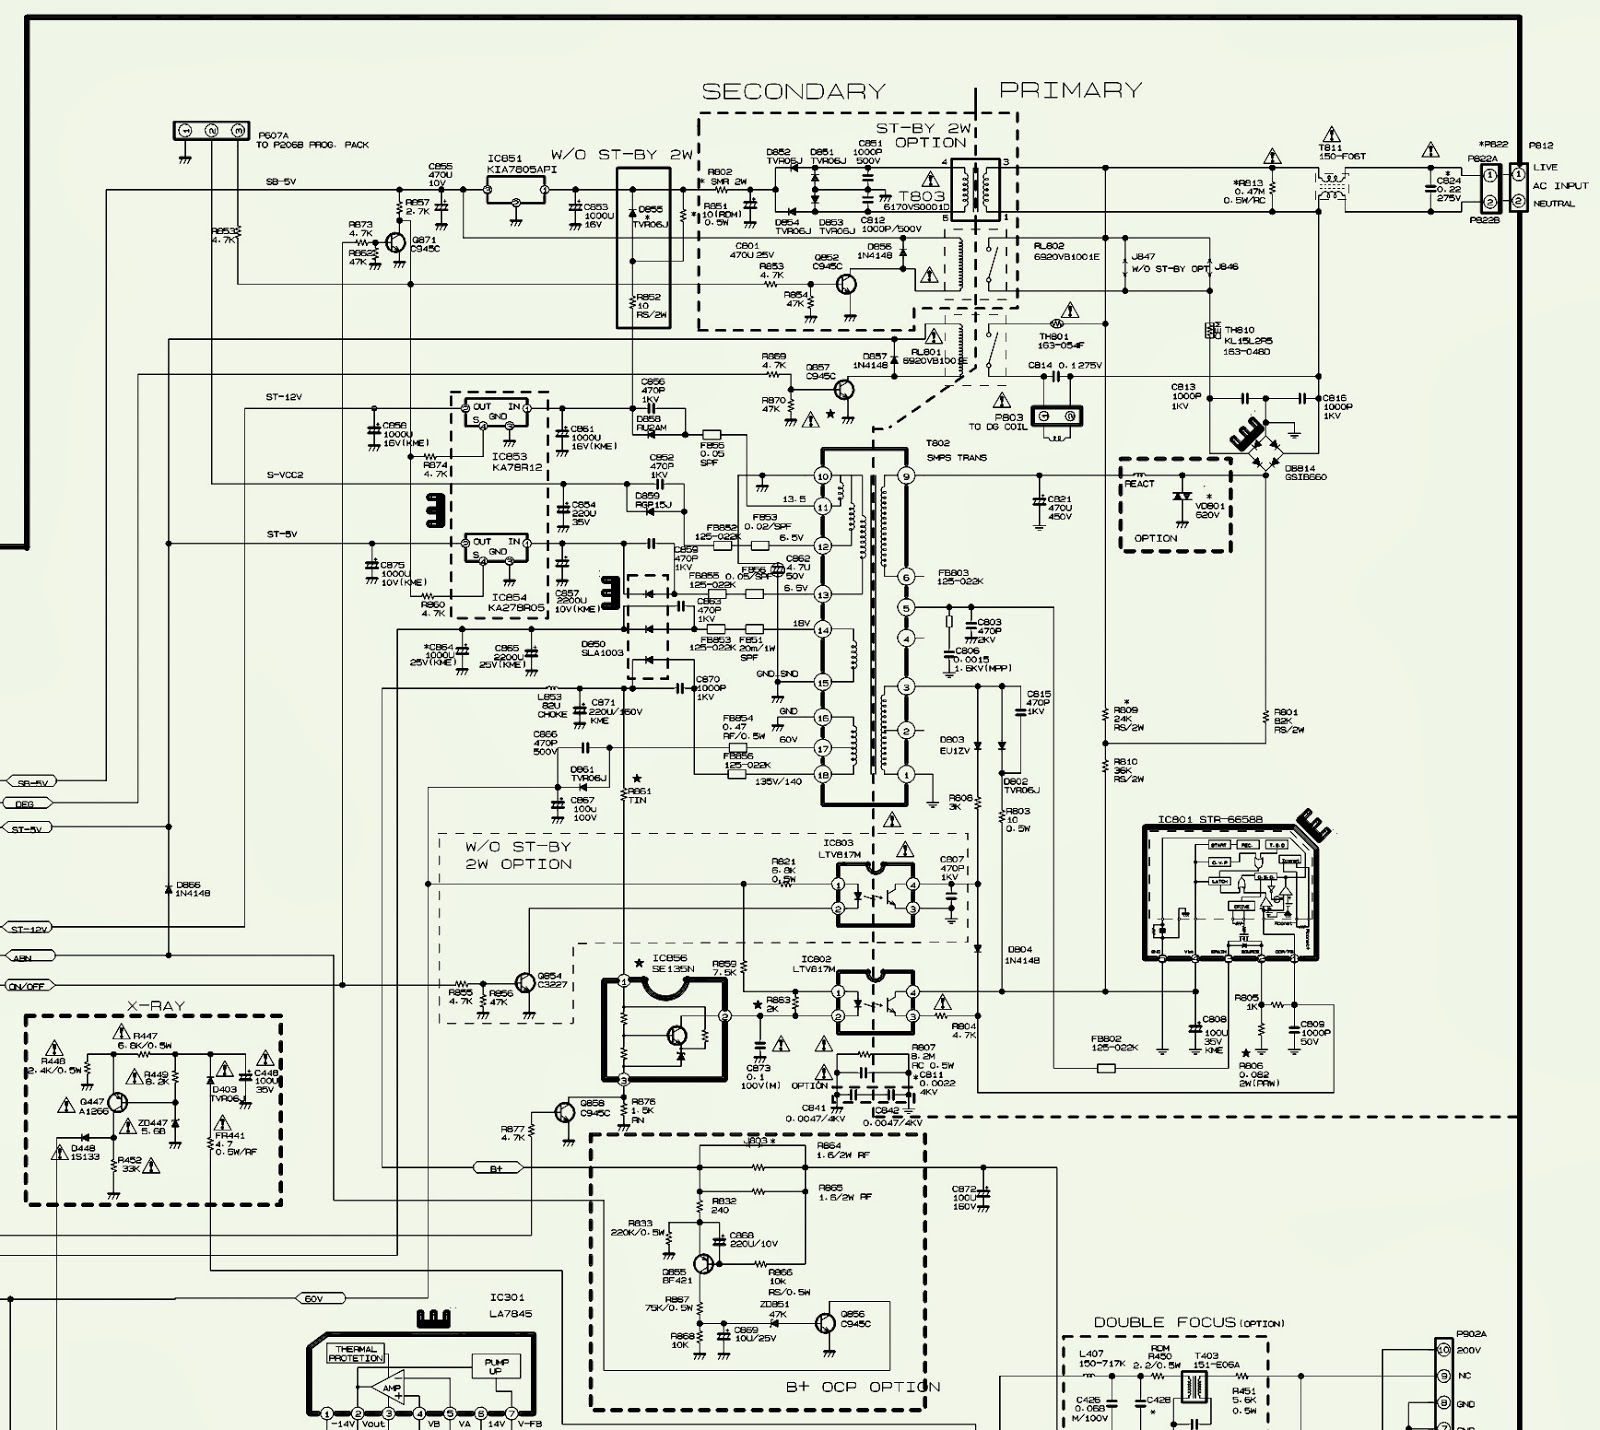 Wiring Diagrams Tv Diagram Libraries Home Theater Cable Box Panasonic Third Levelpanasonic Viera Schematic Schema Dvd